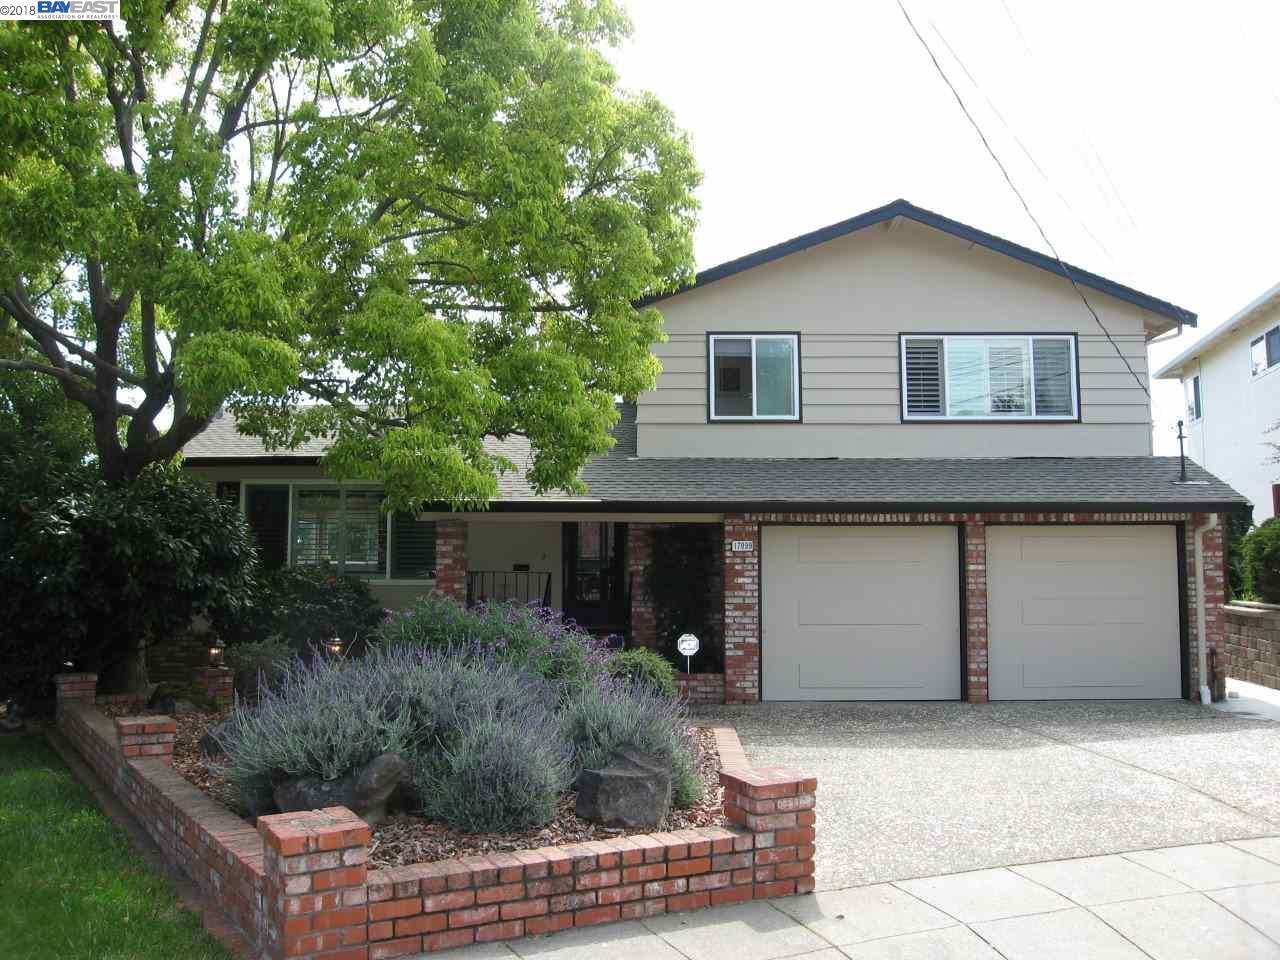 17899 SORANI COURT | CASTRO VALLEY | 1689 | 94546